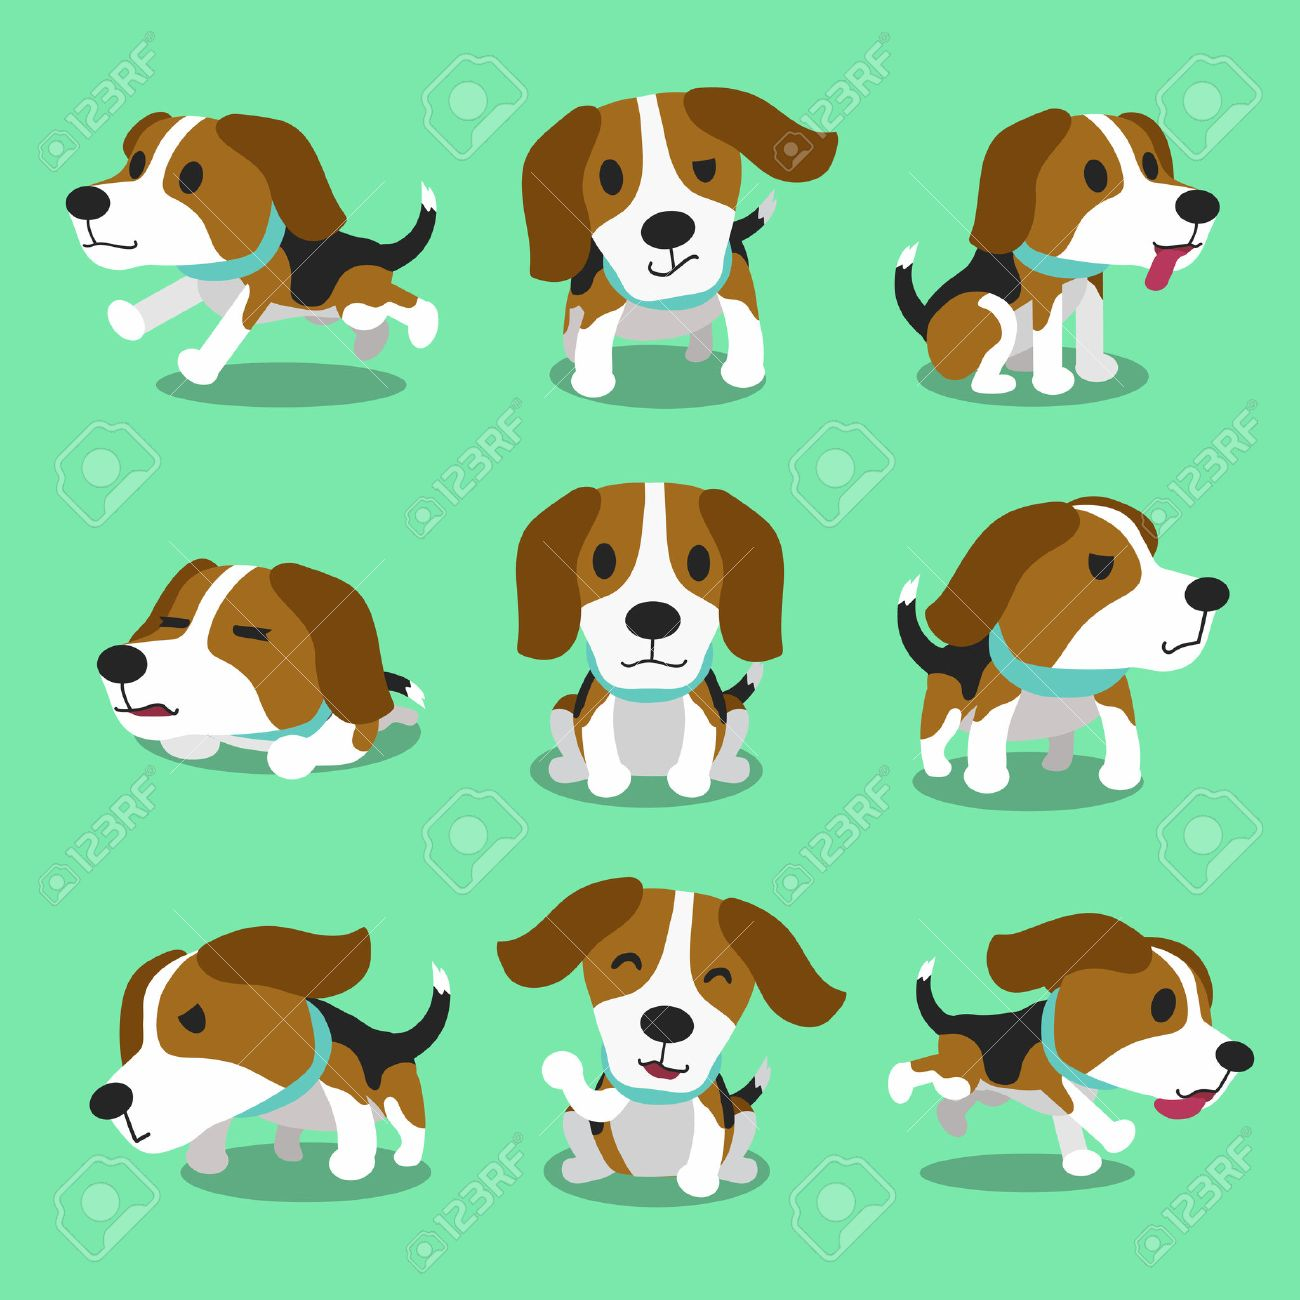 Cartoon character beagle dog poses.